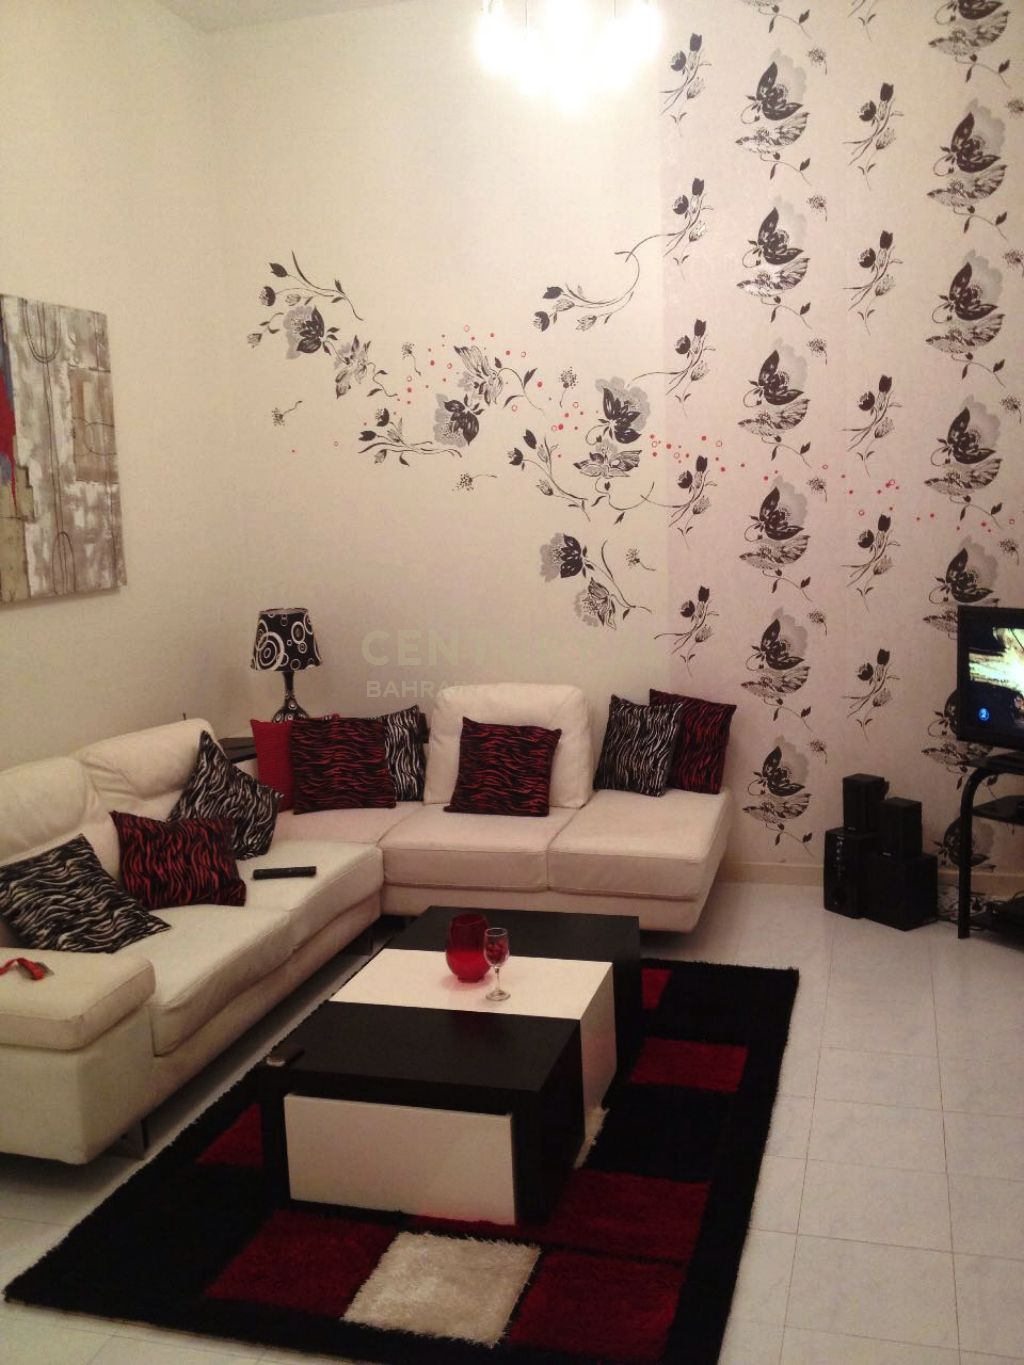 FULLY FURNISHED 1 BEDROOM APARTMENT IN AMWAJ ISLAND